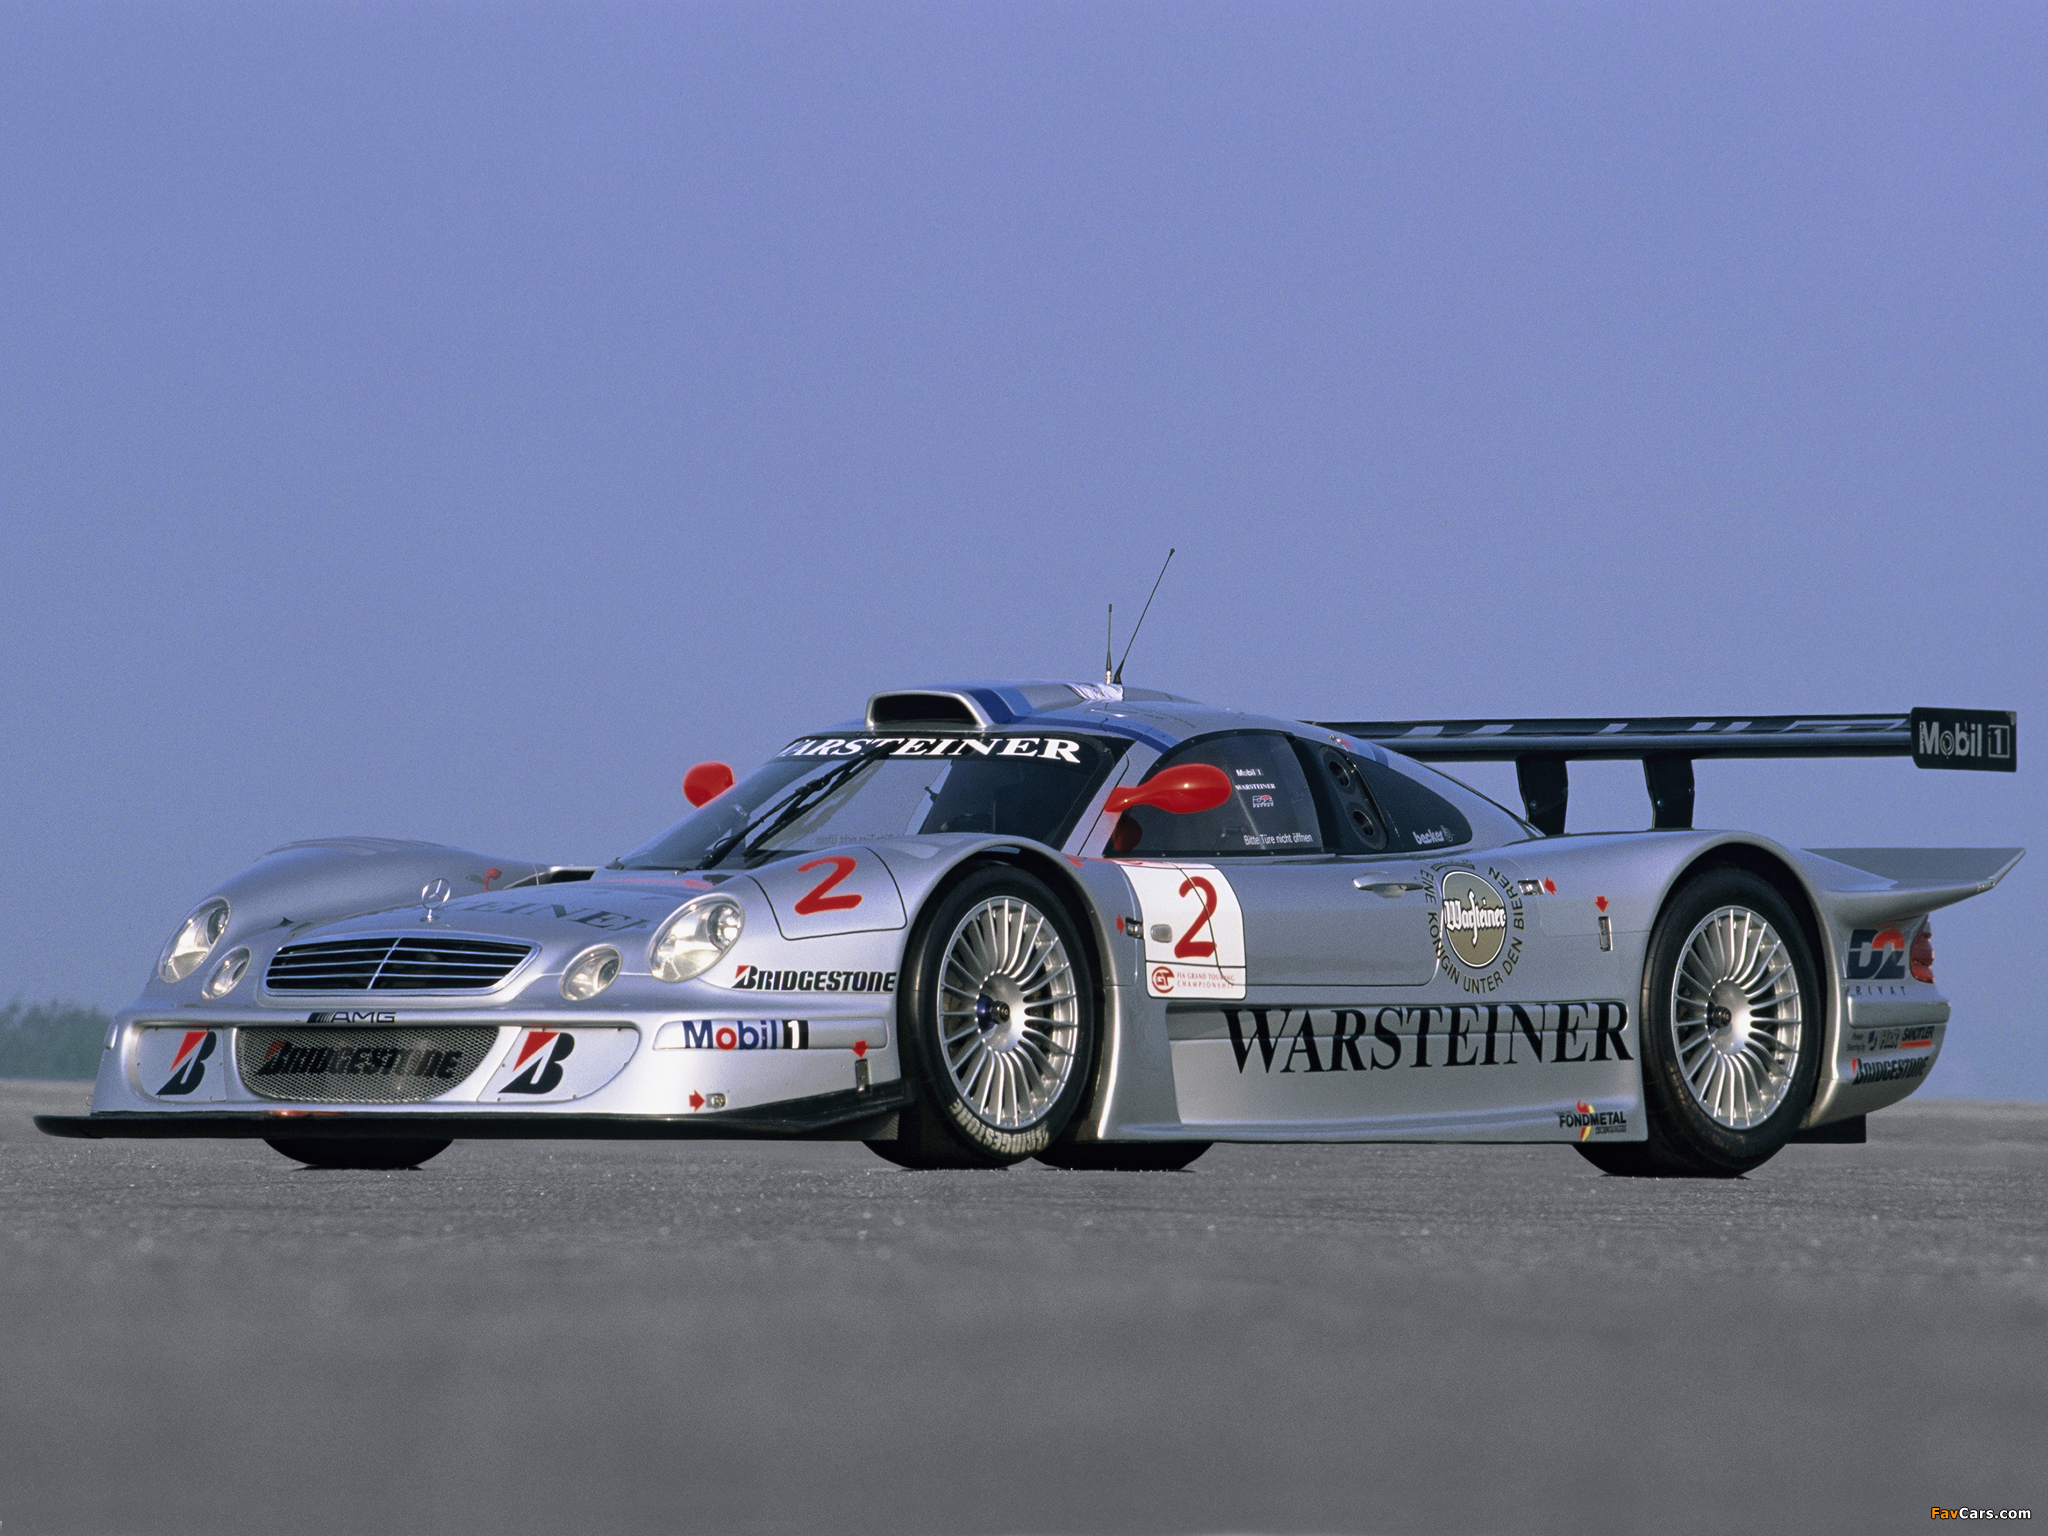 Mercedes Benz Clk Gtr Amg Racing Version Wallpapers 2048x1536